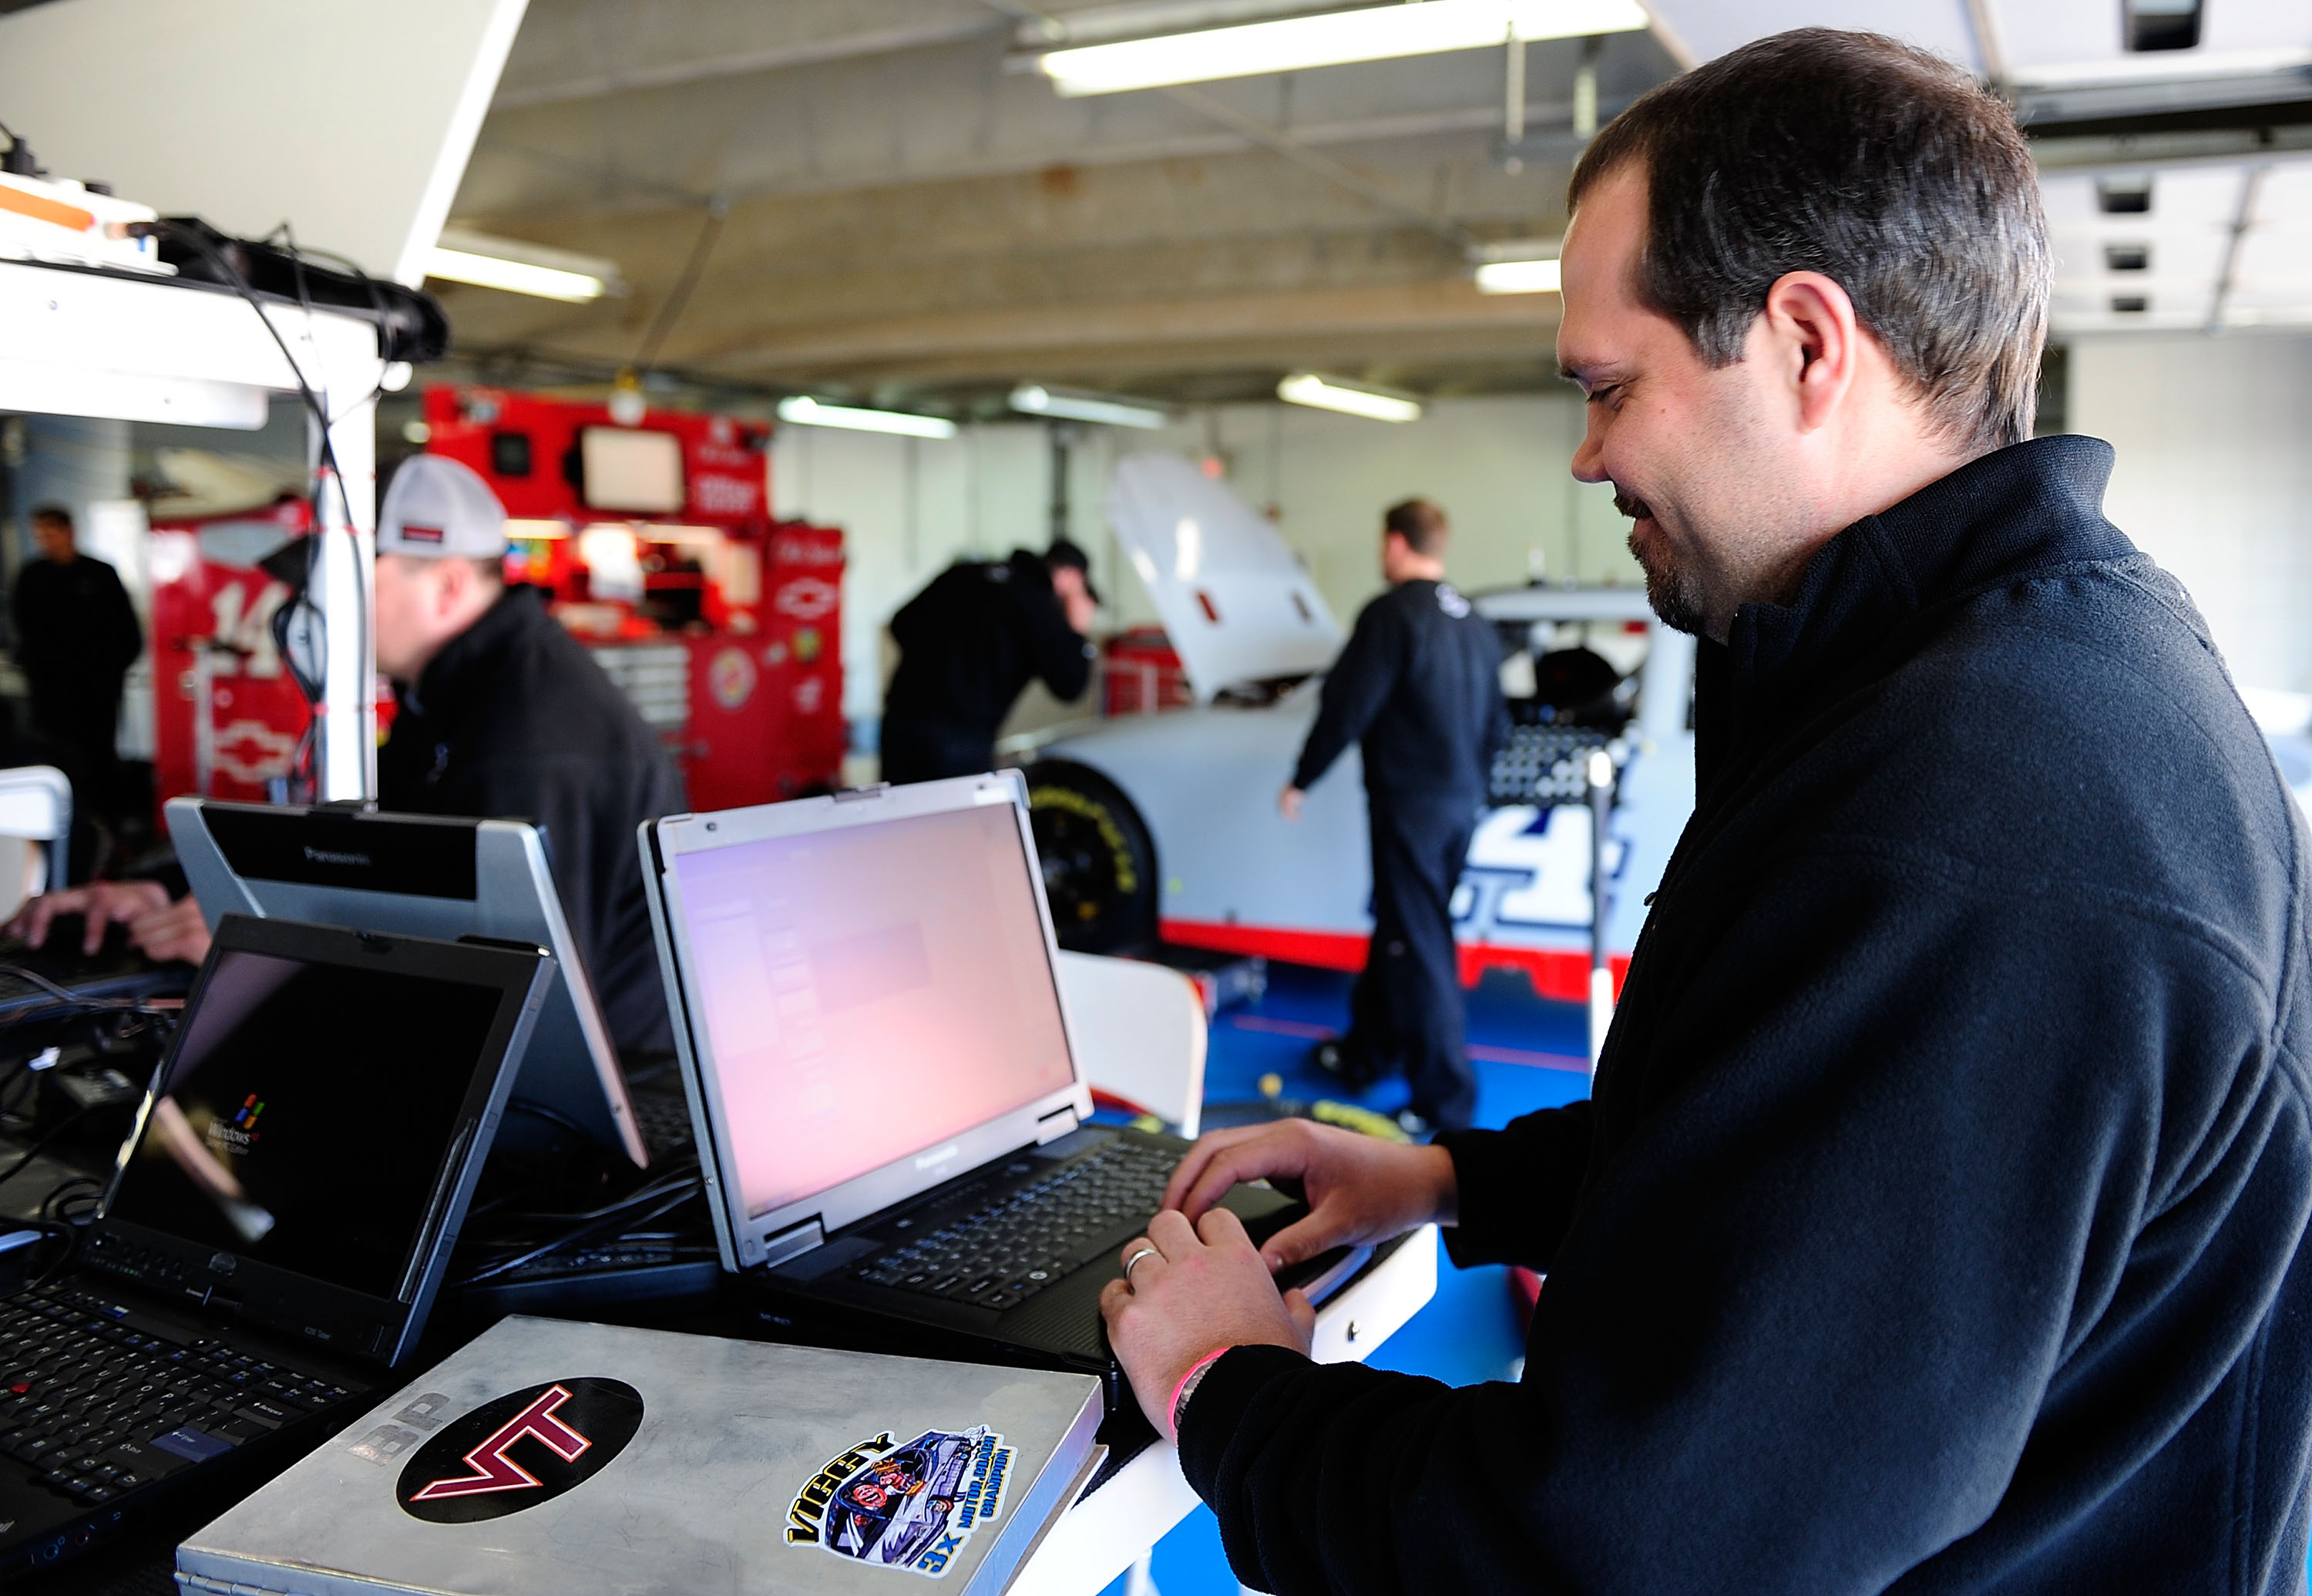 CONCORD, NC - MARCH 24:  Darian Grubb, crew chief for the #14 Steart Haas Chevrolet, enters data in a computer in the garage during NASCAR Sprint Cup Series testing at Charlotte Motor Speedway on March 24, 2010 in Concord, North Carolina.  (Photo by Rusty